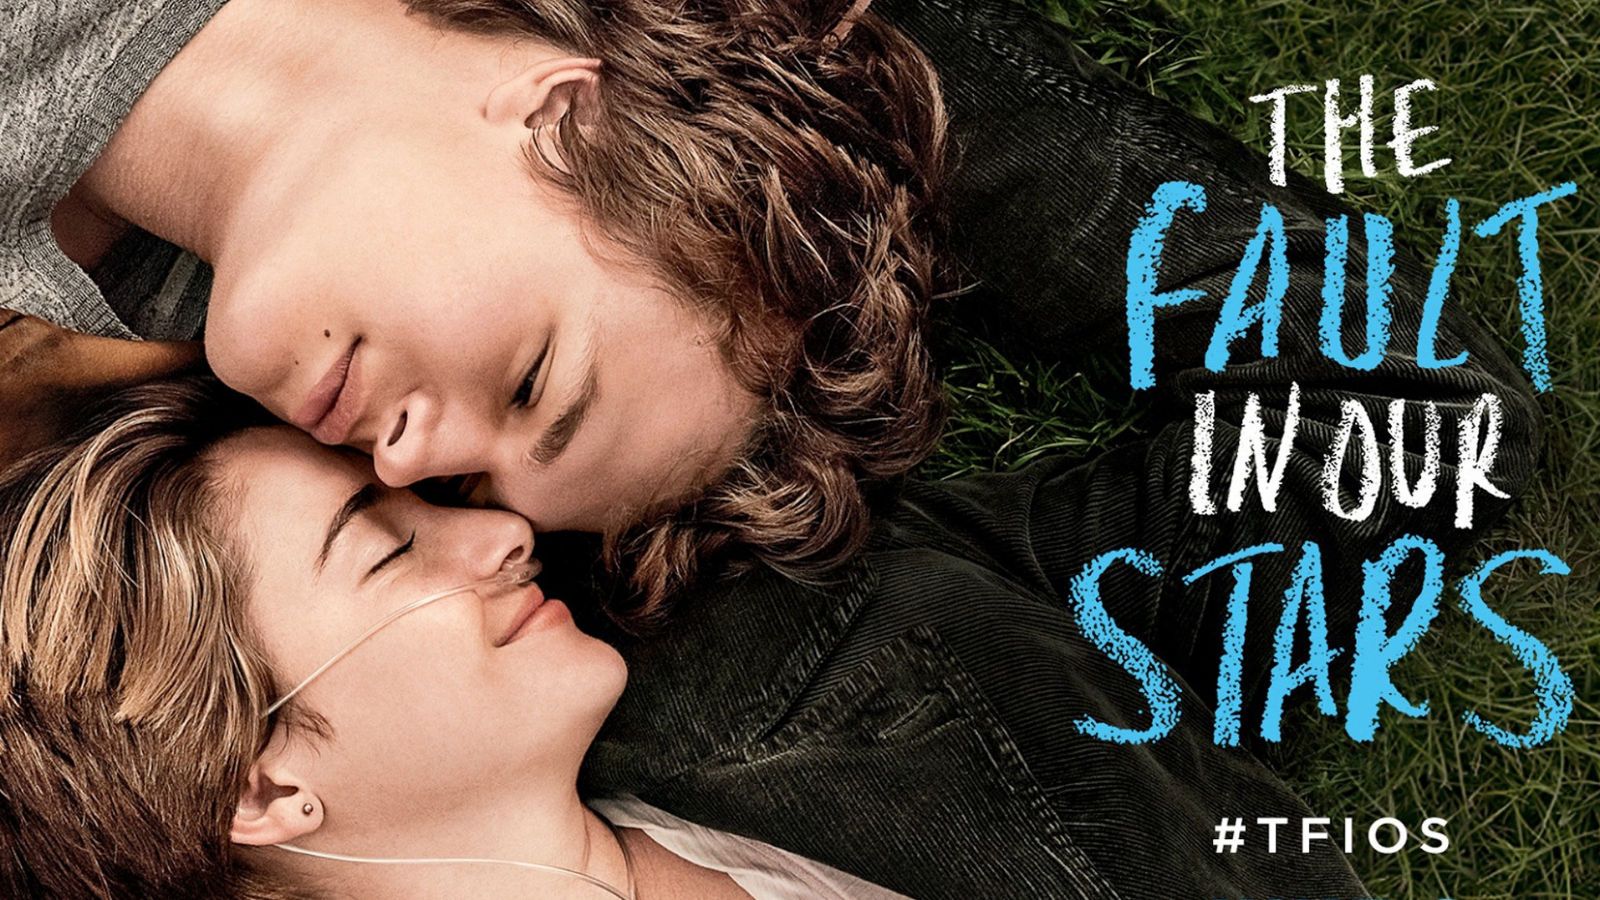 Phim The fault in our star